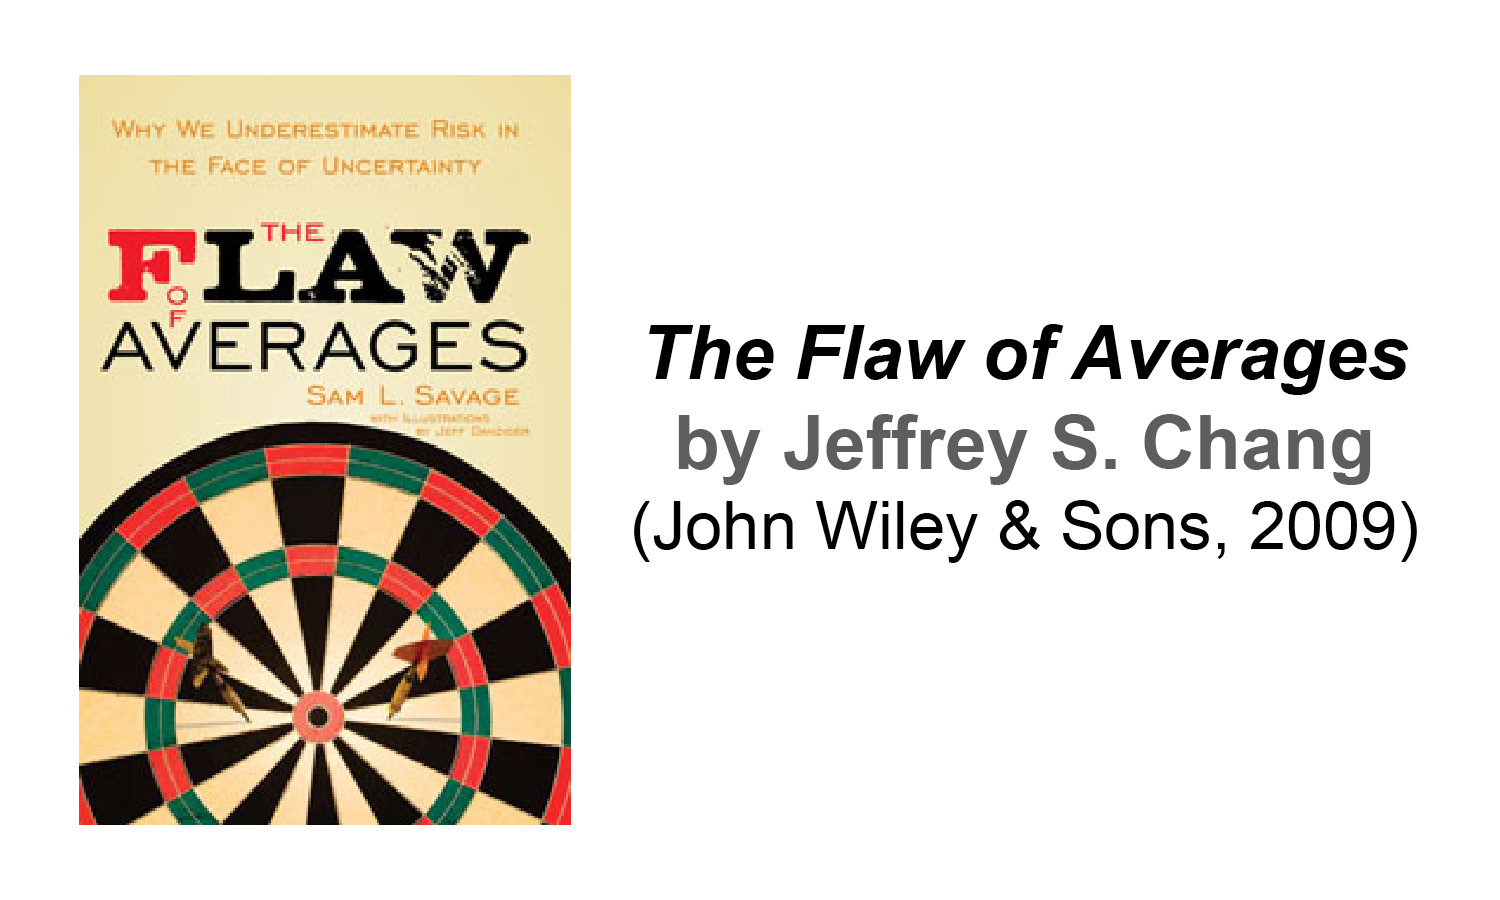 The Flaw of Averages